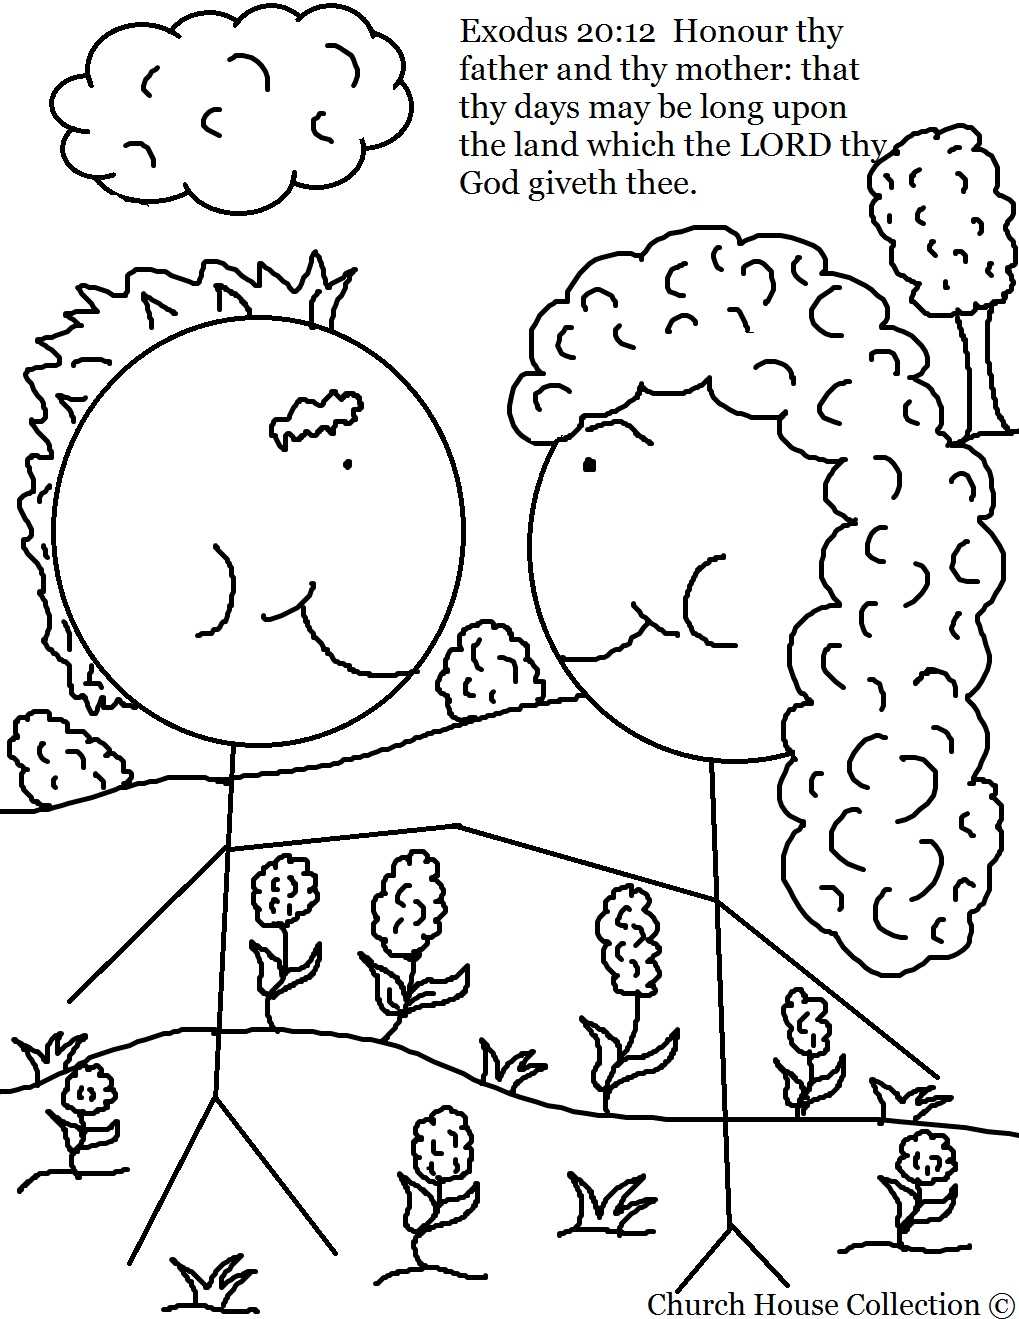 Church house collection blog honor your mother and father for God is our father coloring pages